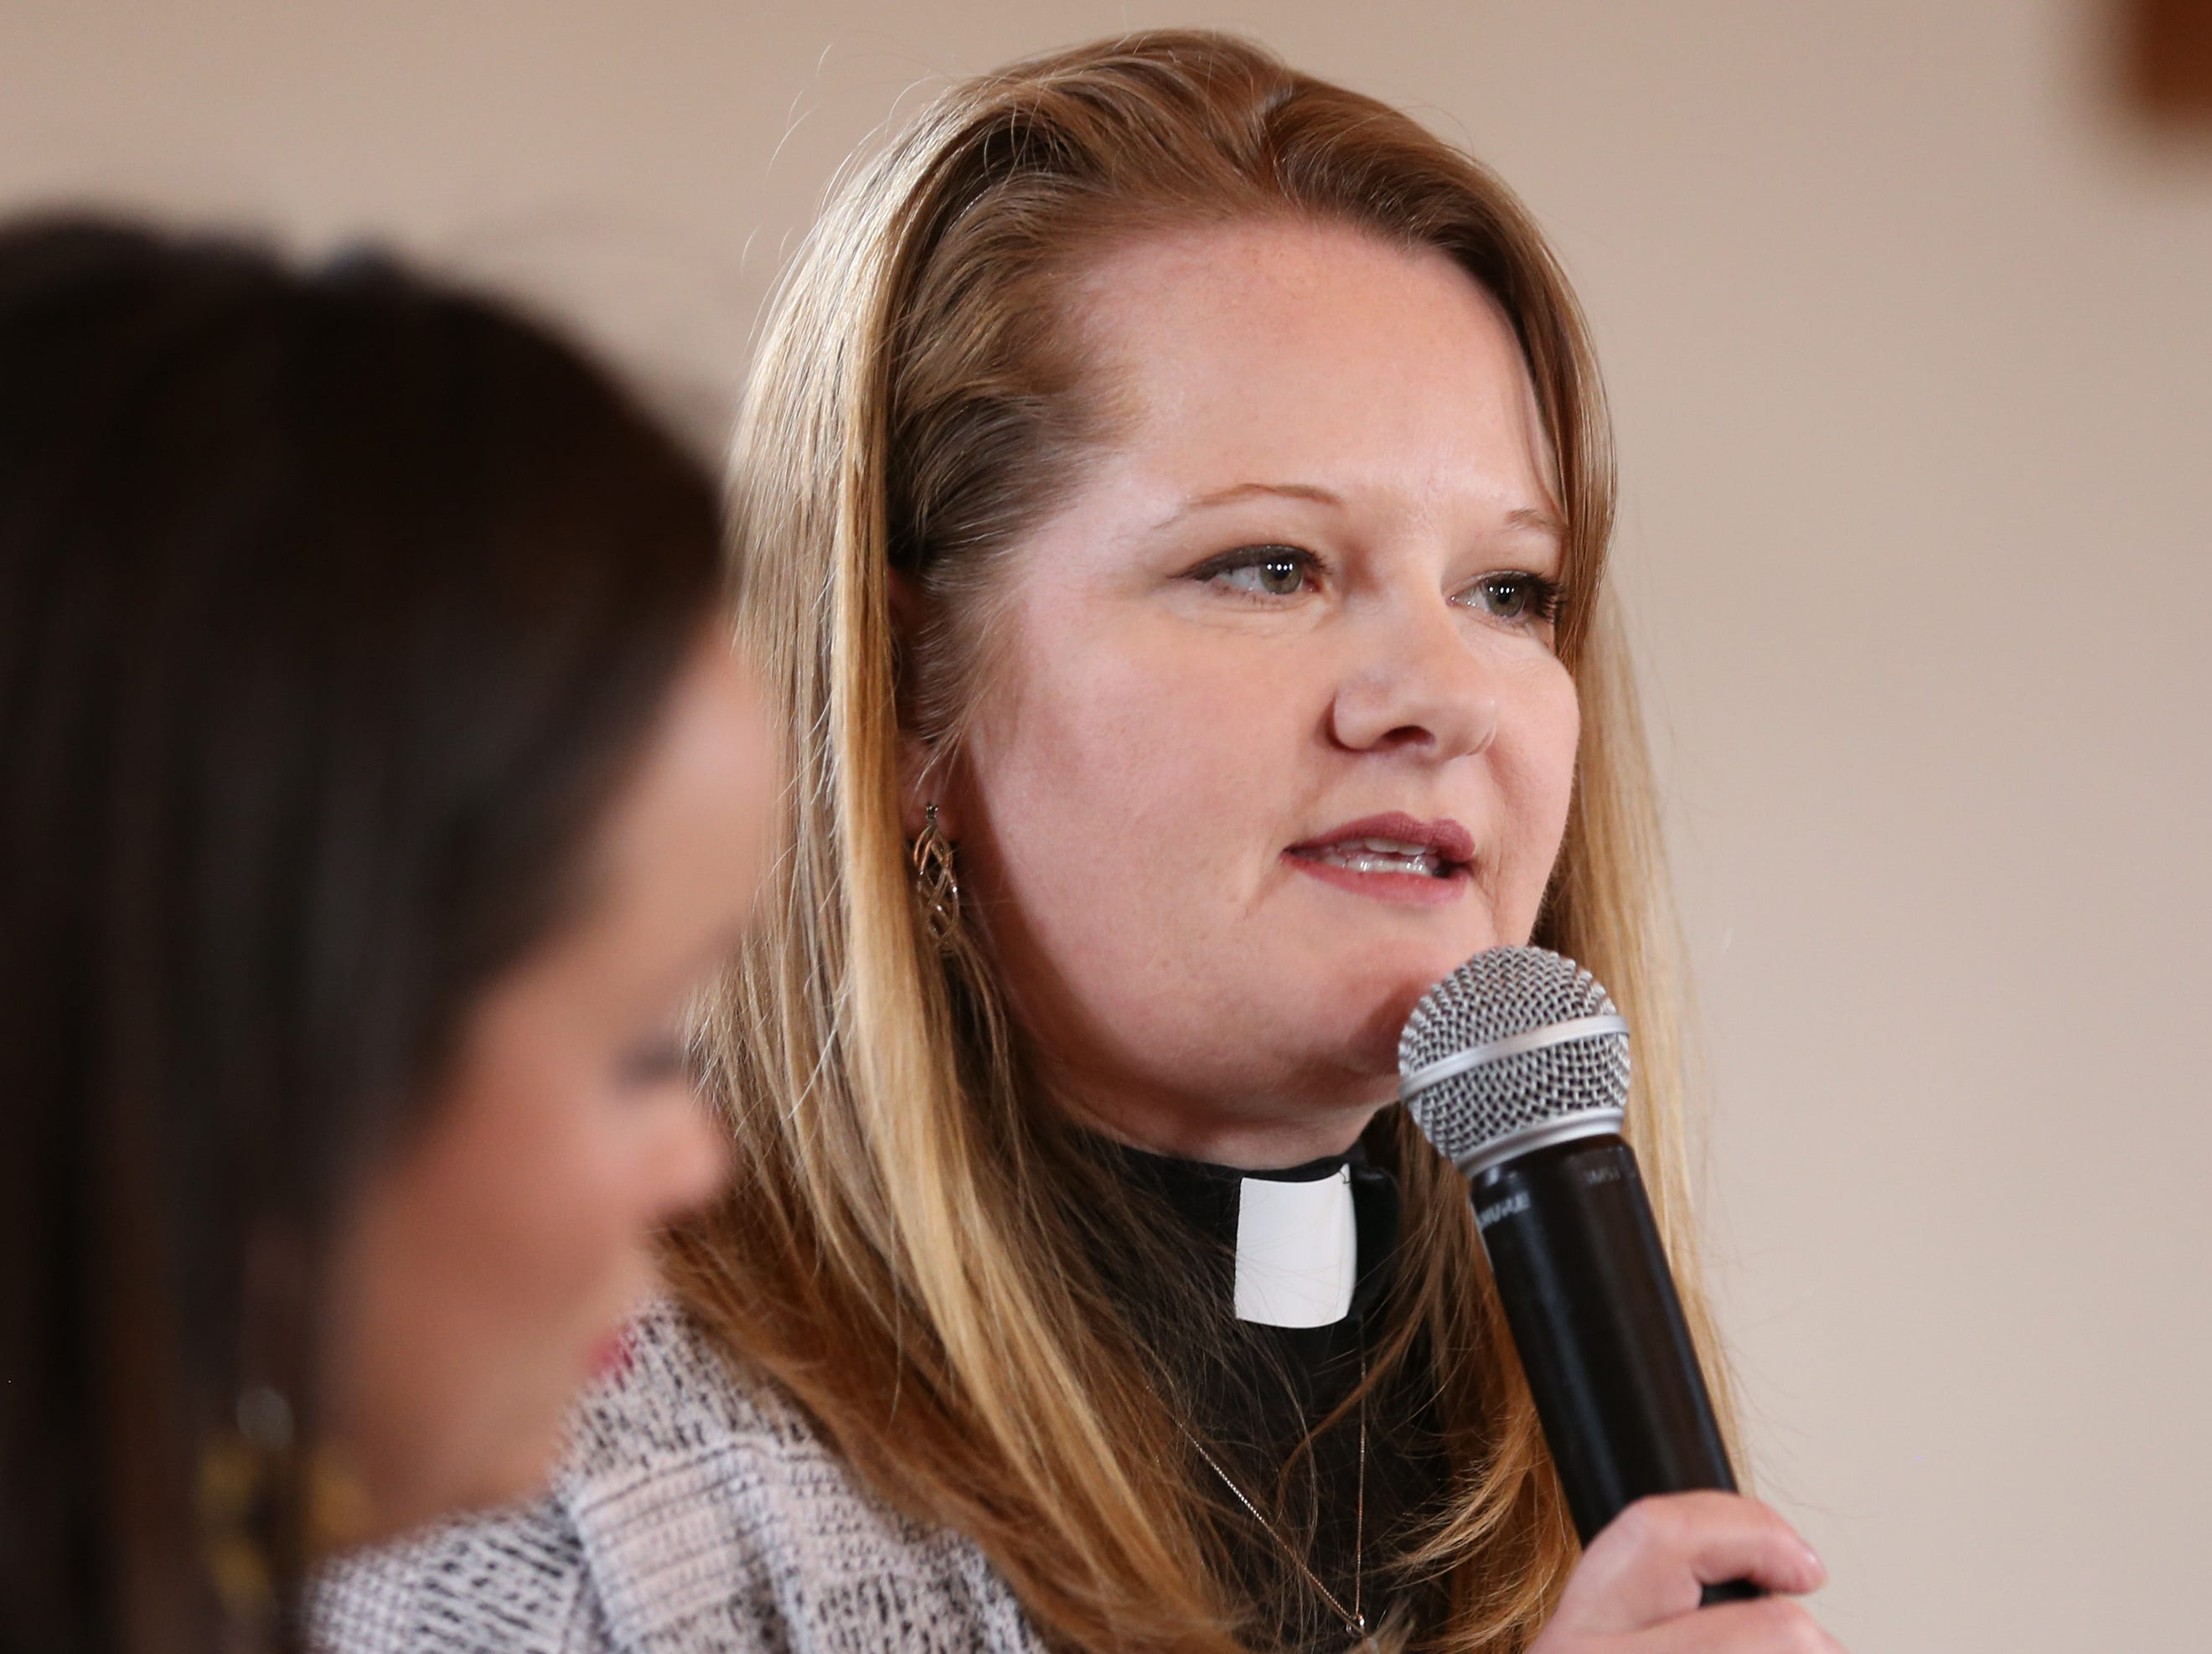 Alison Harrington, pastor, speaks during a press conference on March 20, 2019, at Southside Presbyterian Church, 317 W. 23rd St., in Tucson. A family of three was arrested after a traffic stop by a state trooper where Border Patrol was called to assist.